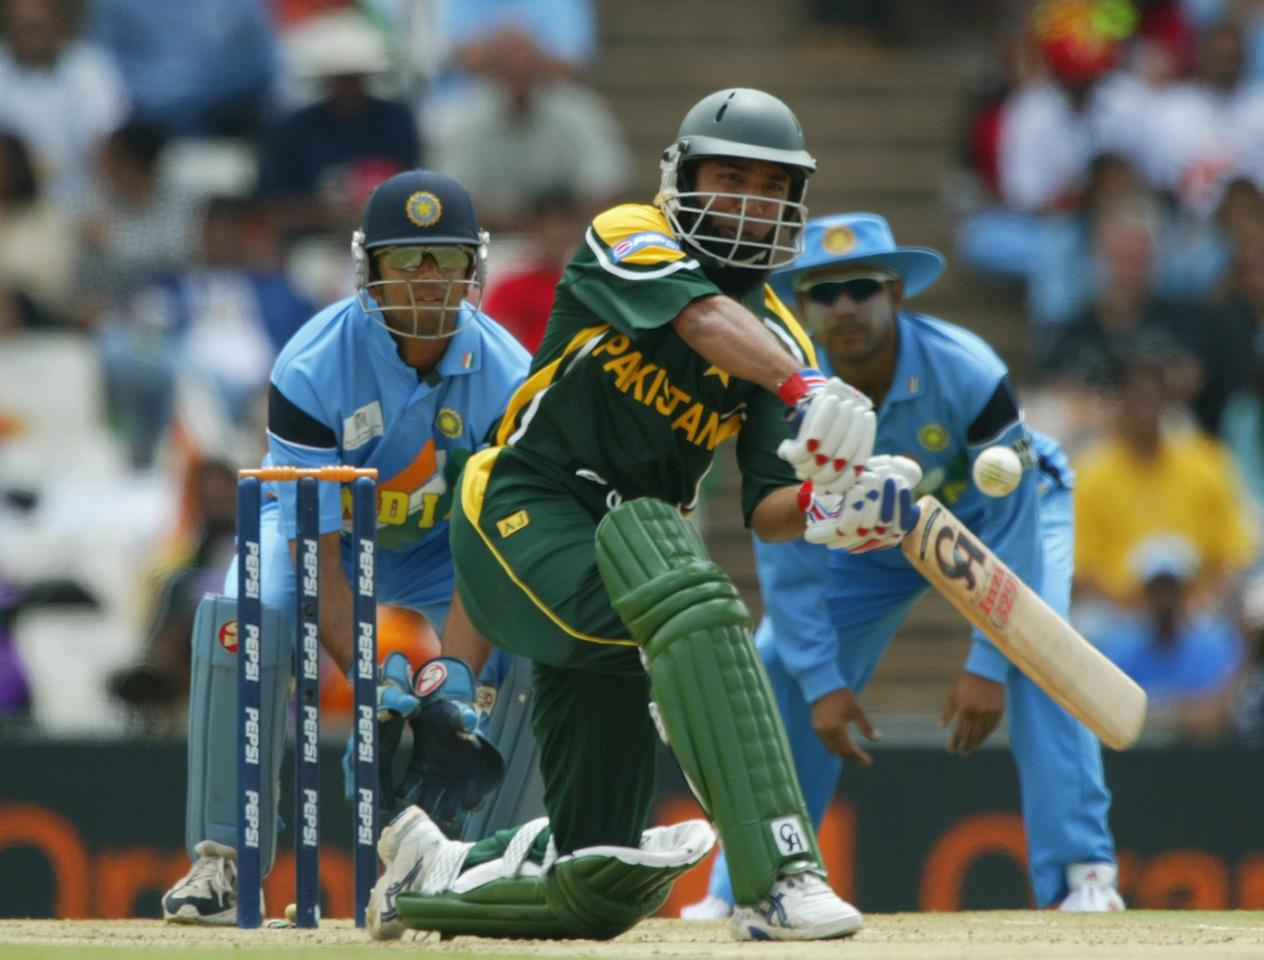 CENTURION - MARCH 1:  Saeed Anwar of Pakistan smashes a boundary on his way to a century during the ICC Cricket World Cup 2003 Pool A match between India and Pakistan held on March 1, 2003 at the Supersport Stadium, in Centurion, South Africa. India won the match by 6 wickets. (Photo by Mike Hewitt/Getty Images)